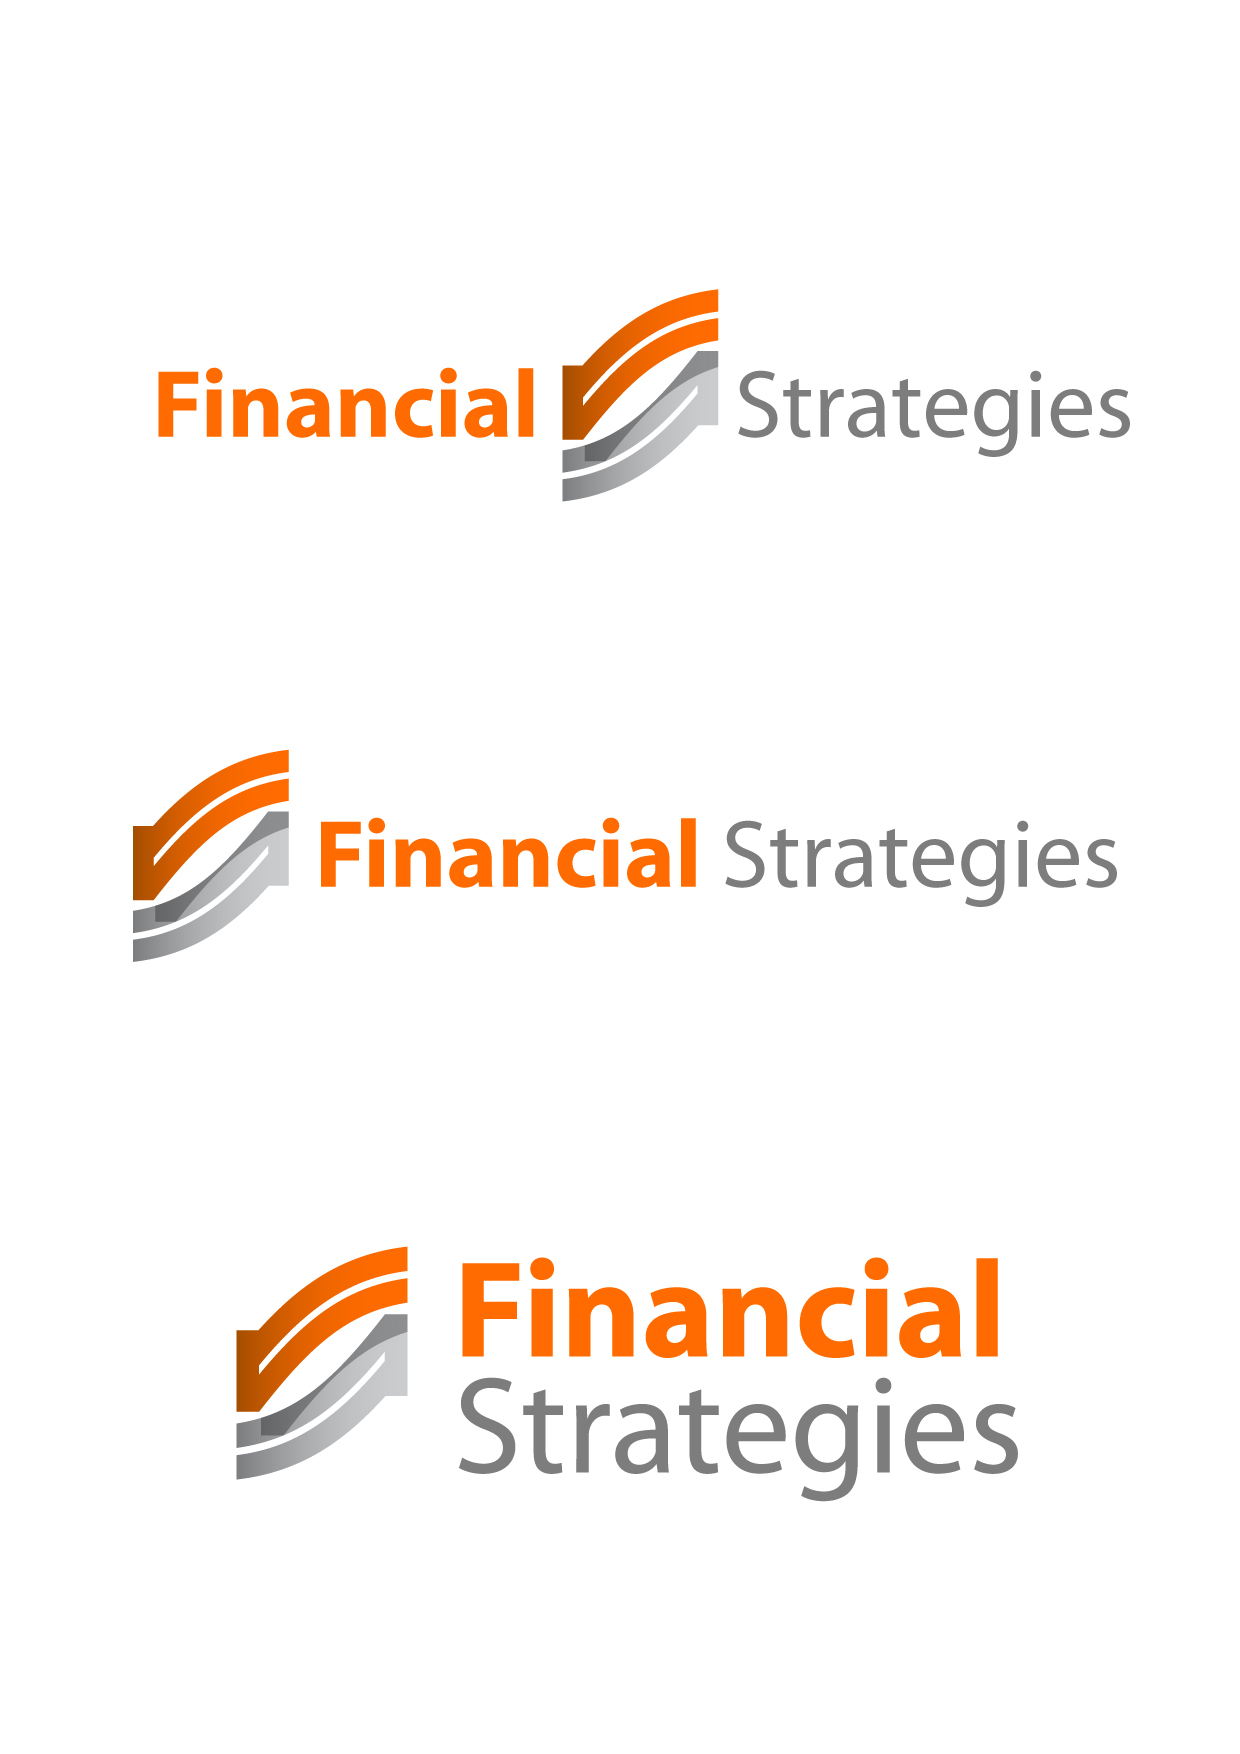 Logo Design by Wilfredo Mendoza - Entry No. 86 in the Logo Design Contest Logo Design Needed for Exciting New Company FS Financial Strategies.